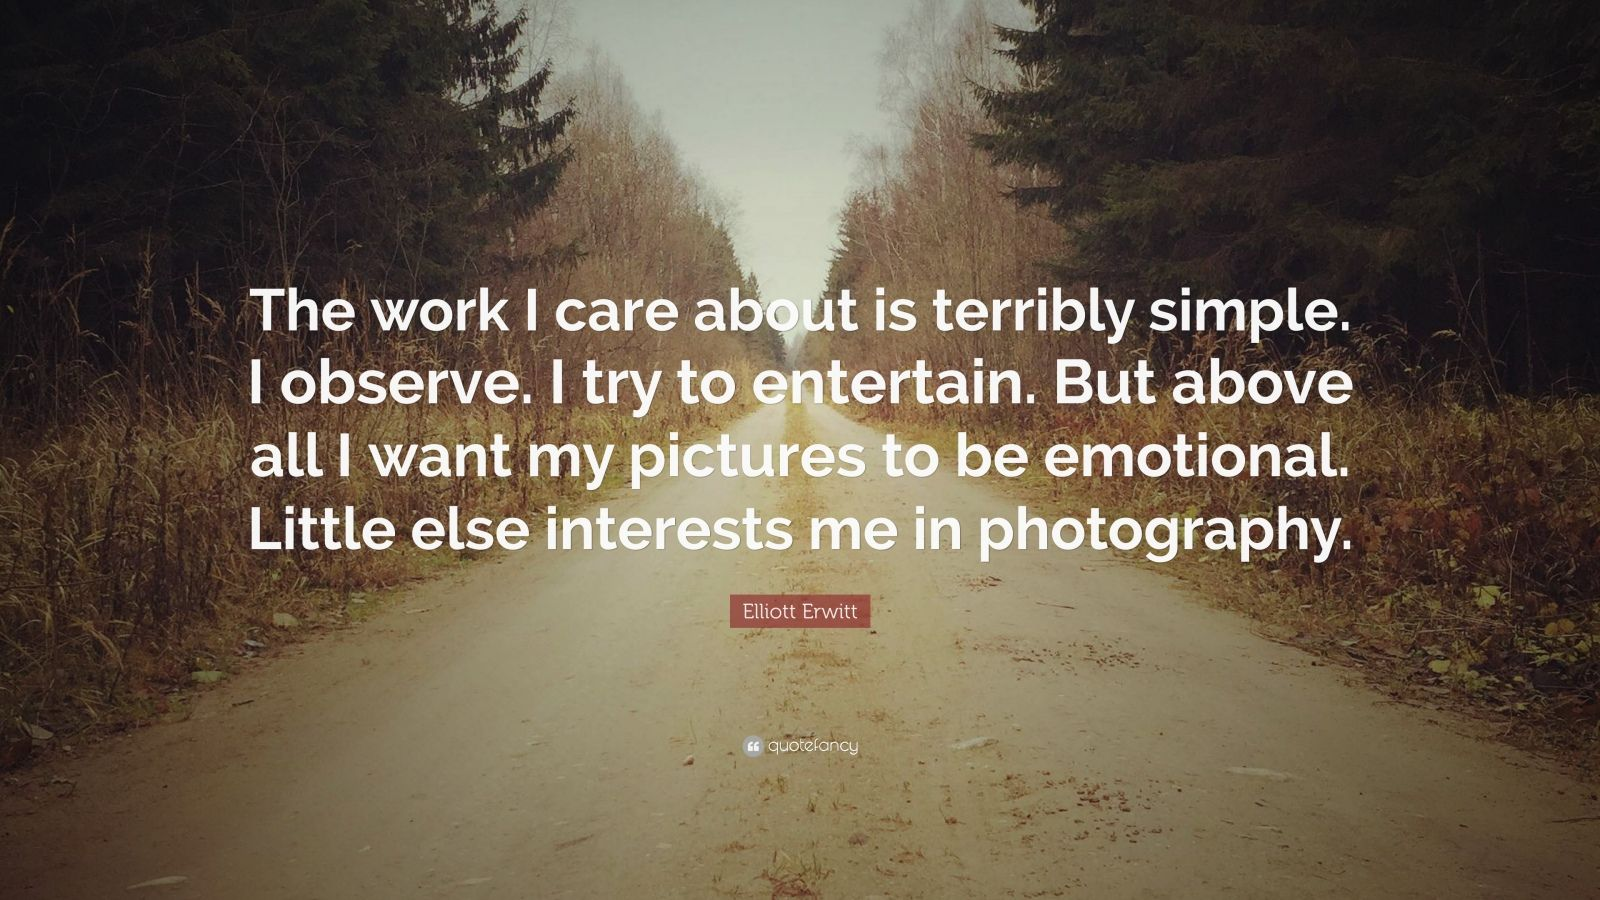 """Elliott Erwitt Quote: """"The work I care about is terribly simple. I observe. I try to entertain. But above all I want my pictures to be emotional. Little else interests me in photography."""""""